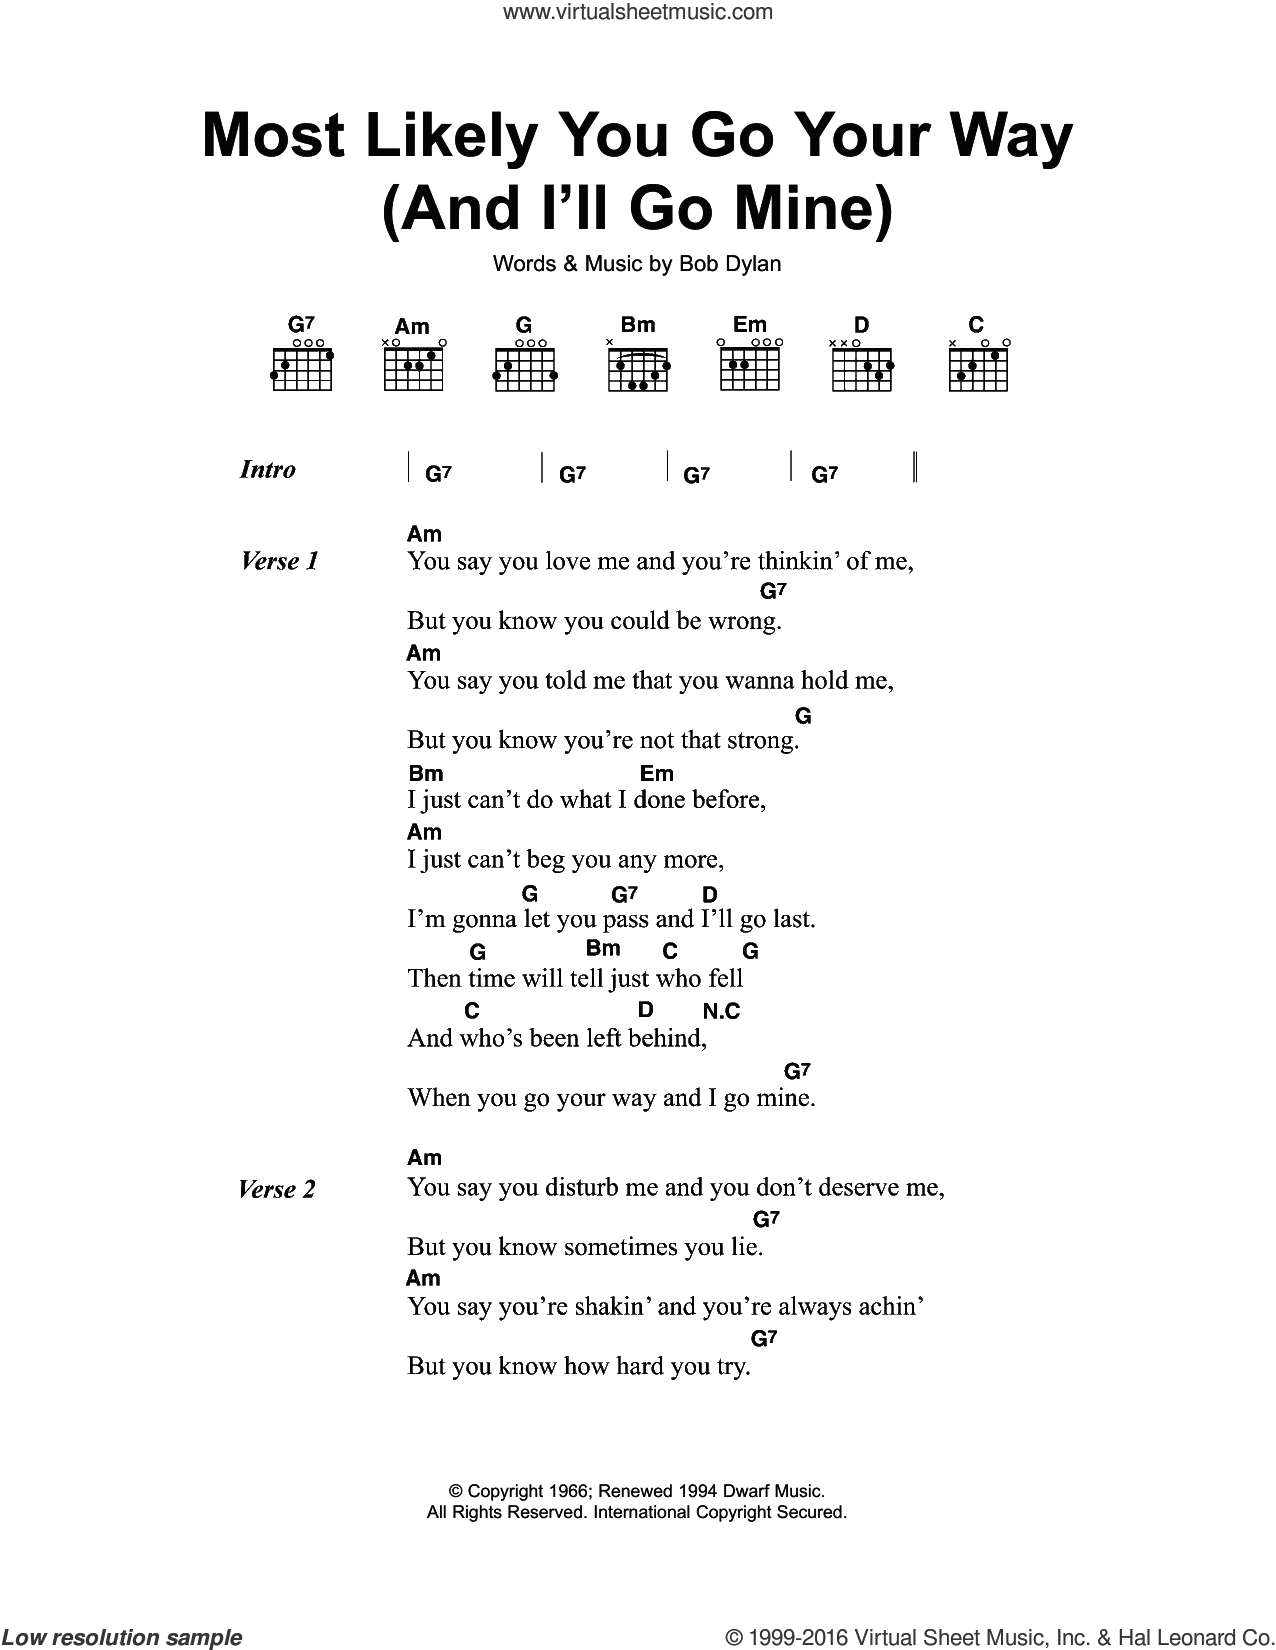 Most Likely You Go Your Way (And I'll Go Mine) sheet music for guitar (chords) by Bob Dylan, intermediate. Score Image Preview.